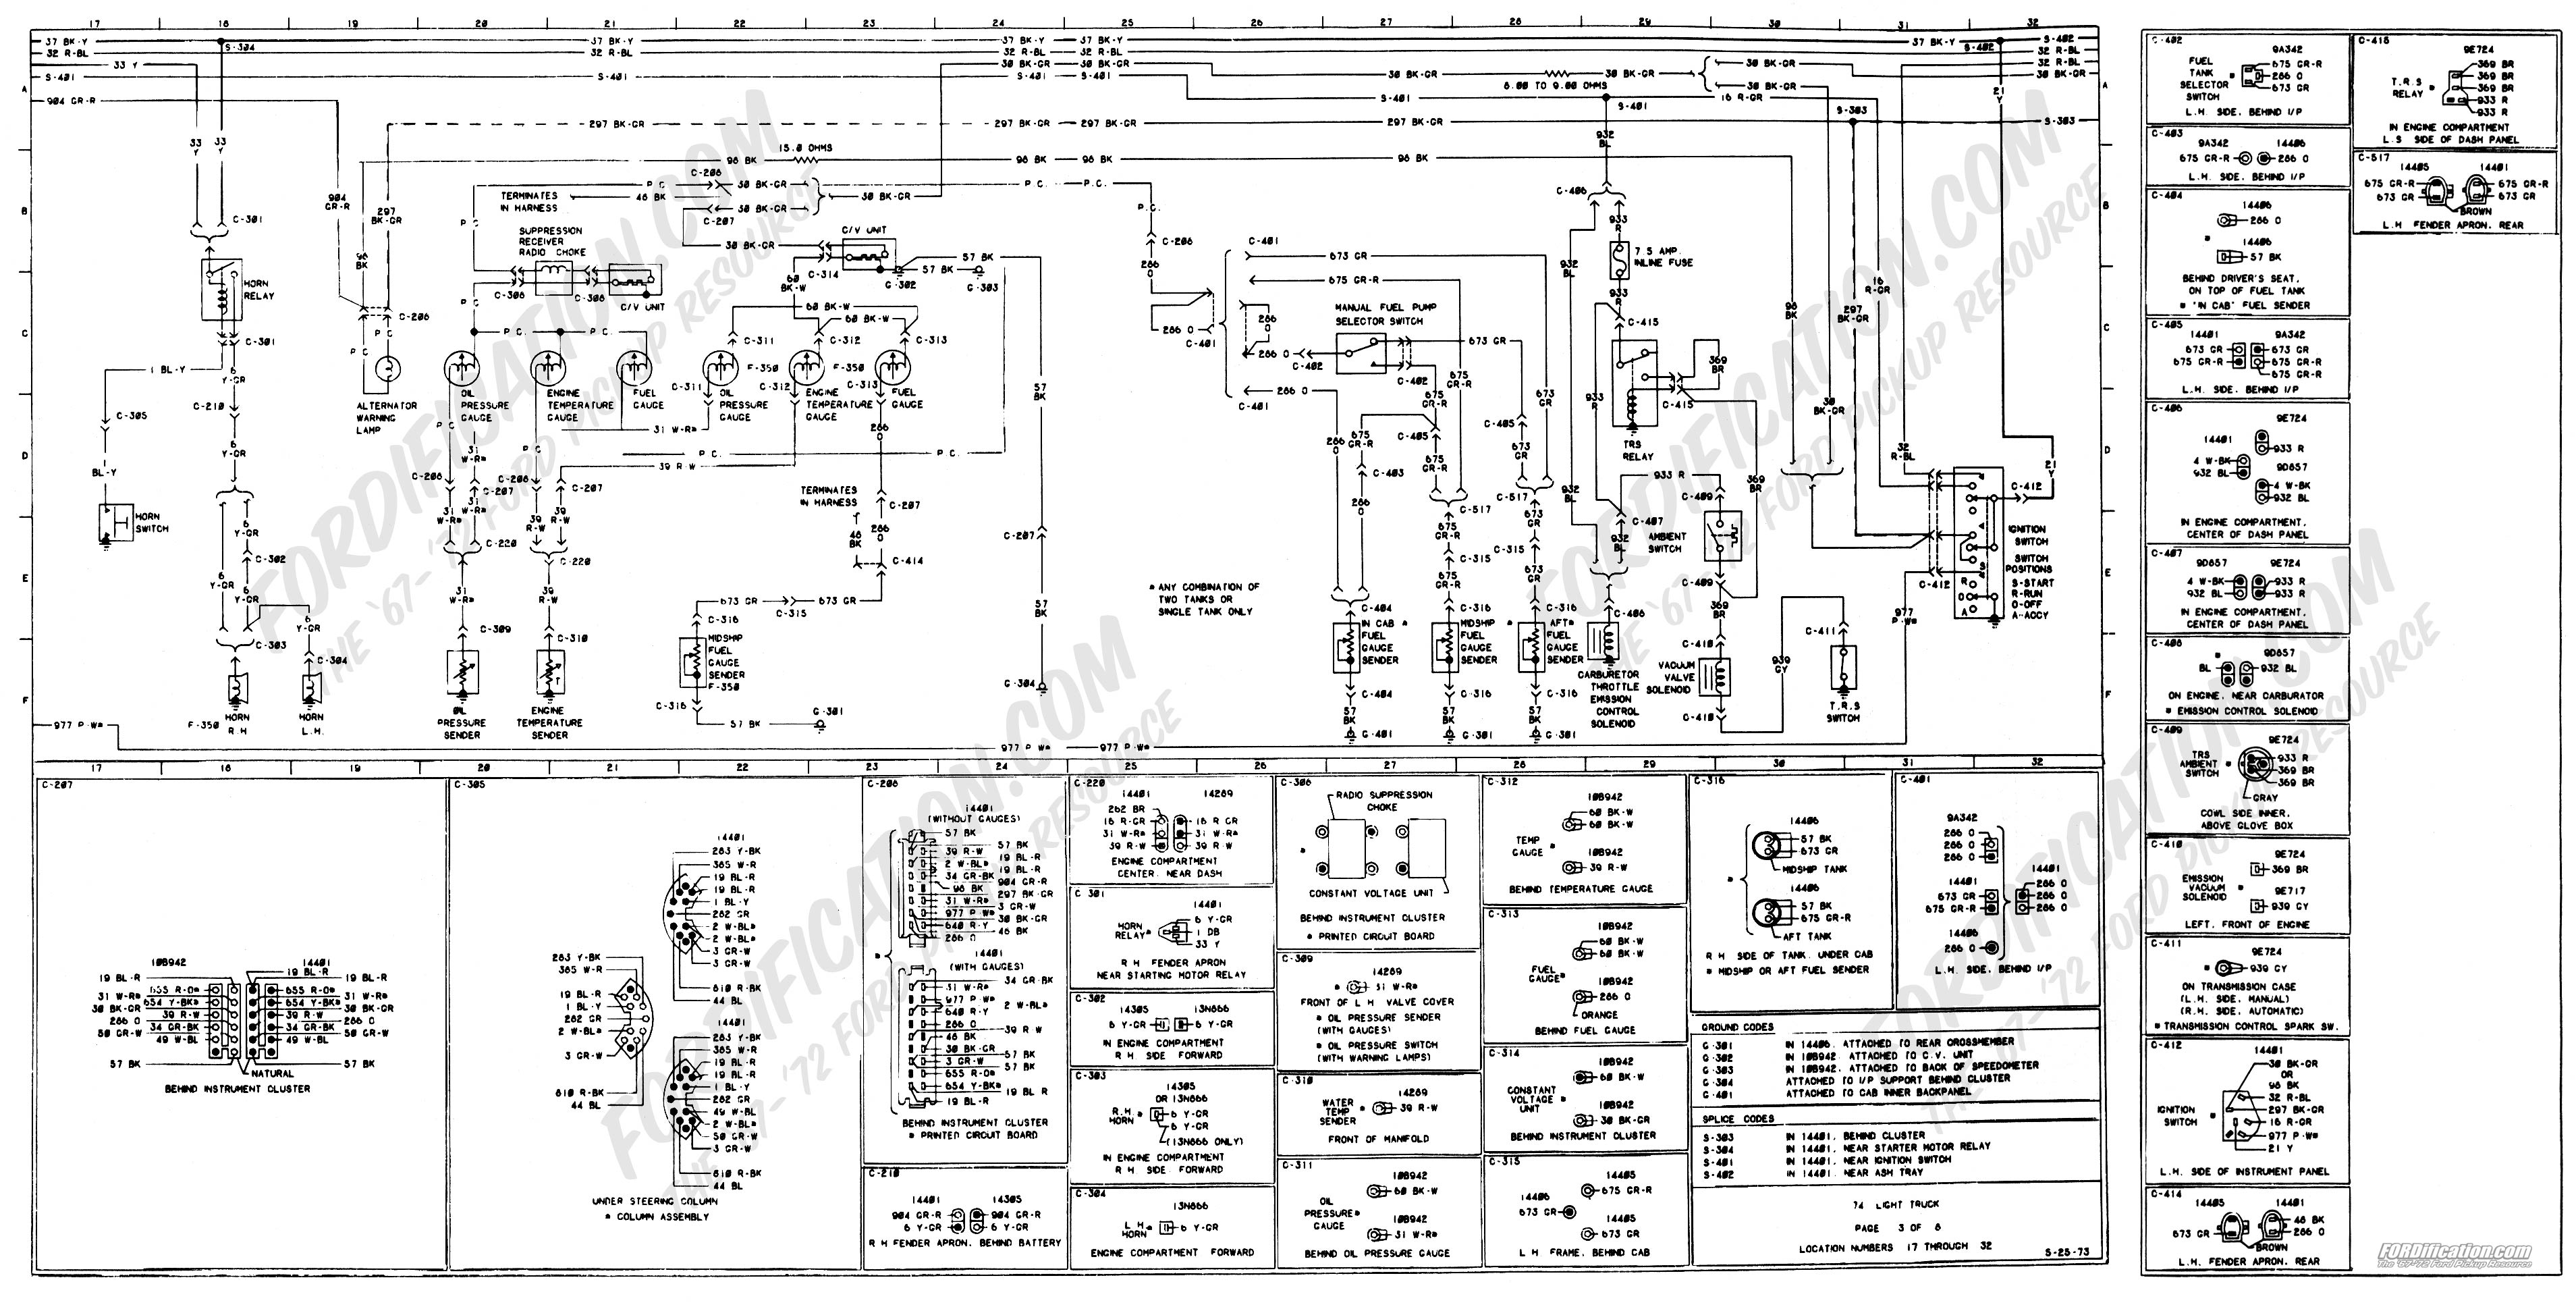 1973 1979 ford truck wiring diagrams \u0026 schematics fordification net Ford Bronco Timing Chain Diagram Wiring Diagram 73 Ford Bronco Radio #2